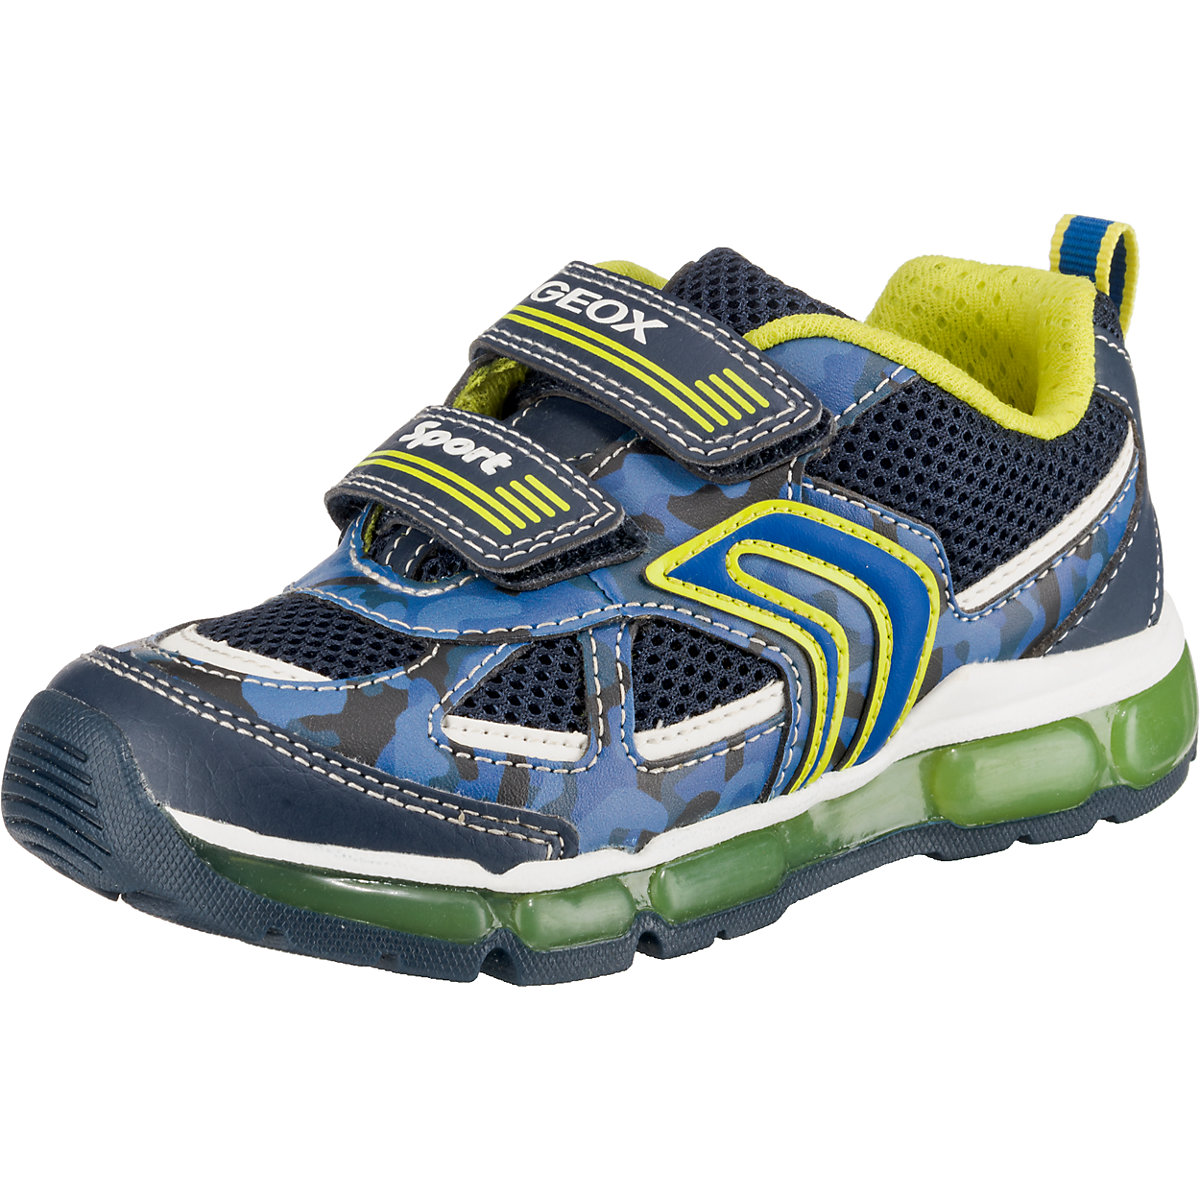 GEOX Kids' Sneakers 10185307 sport shoes for boys and girls men sport shoes